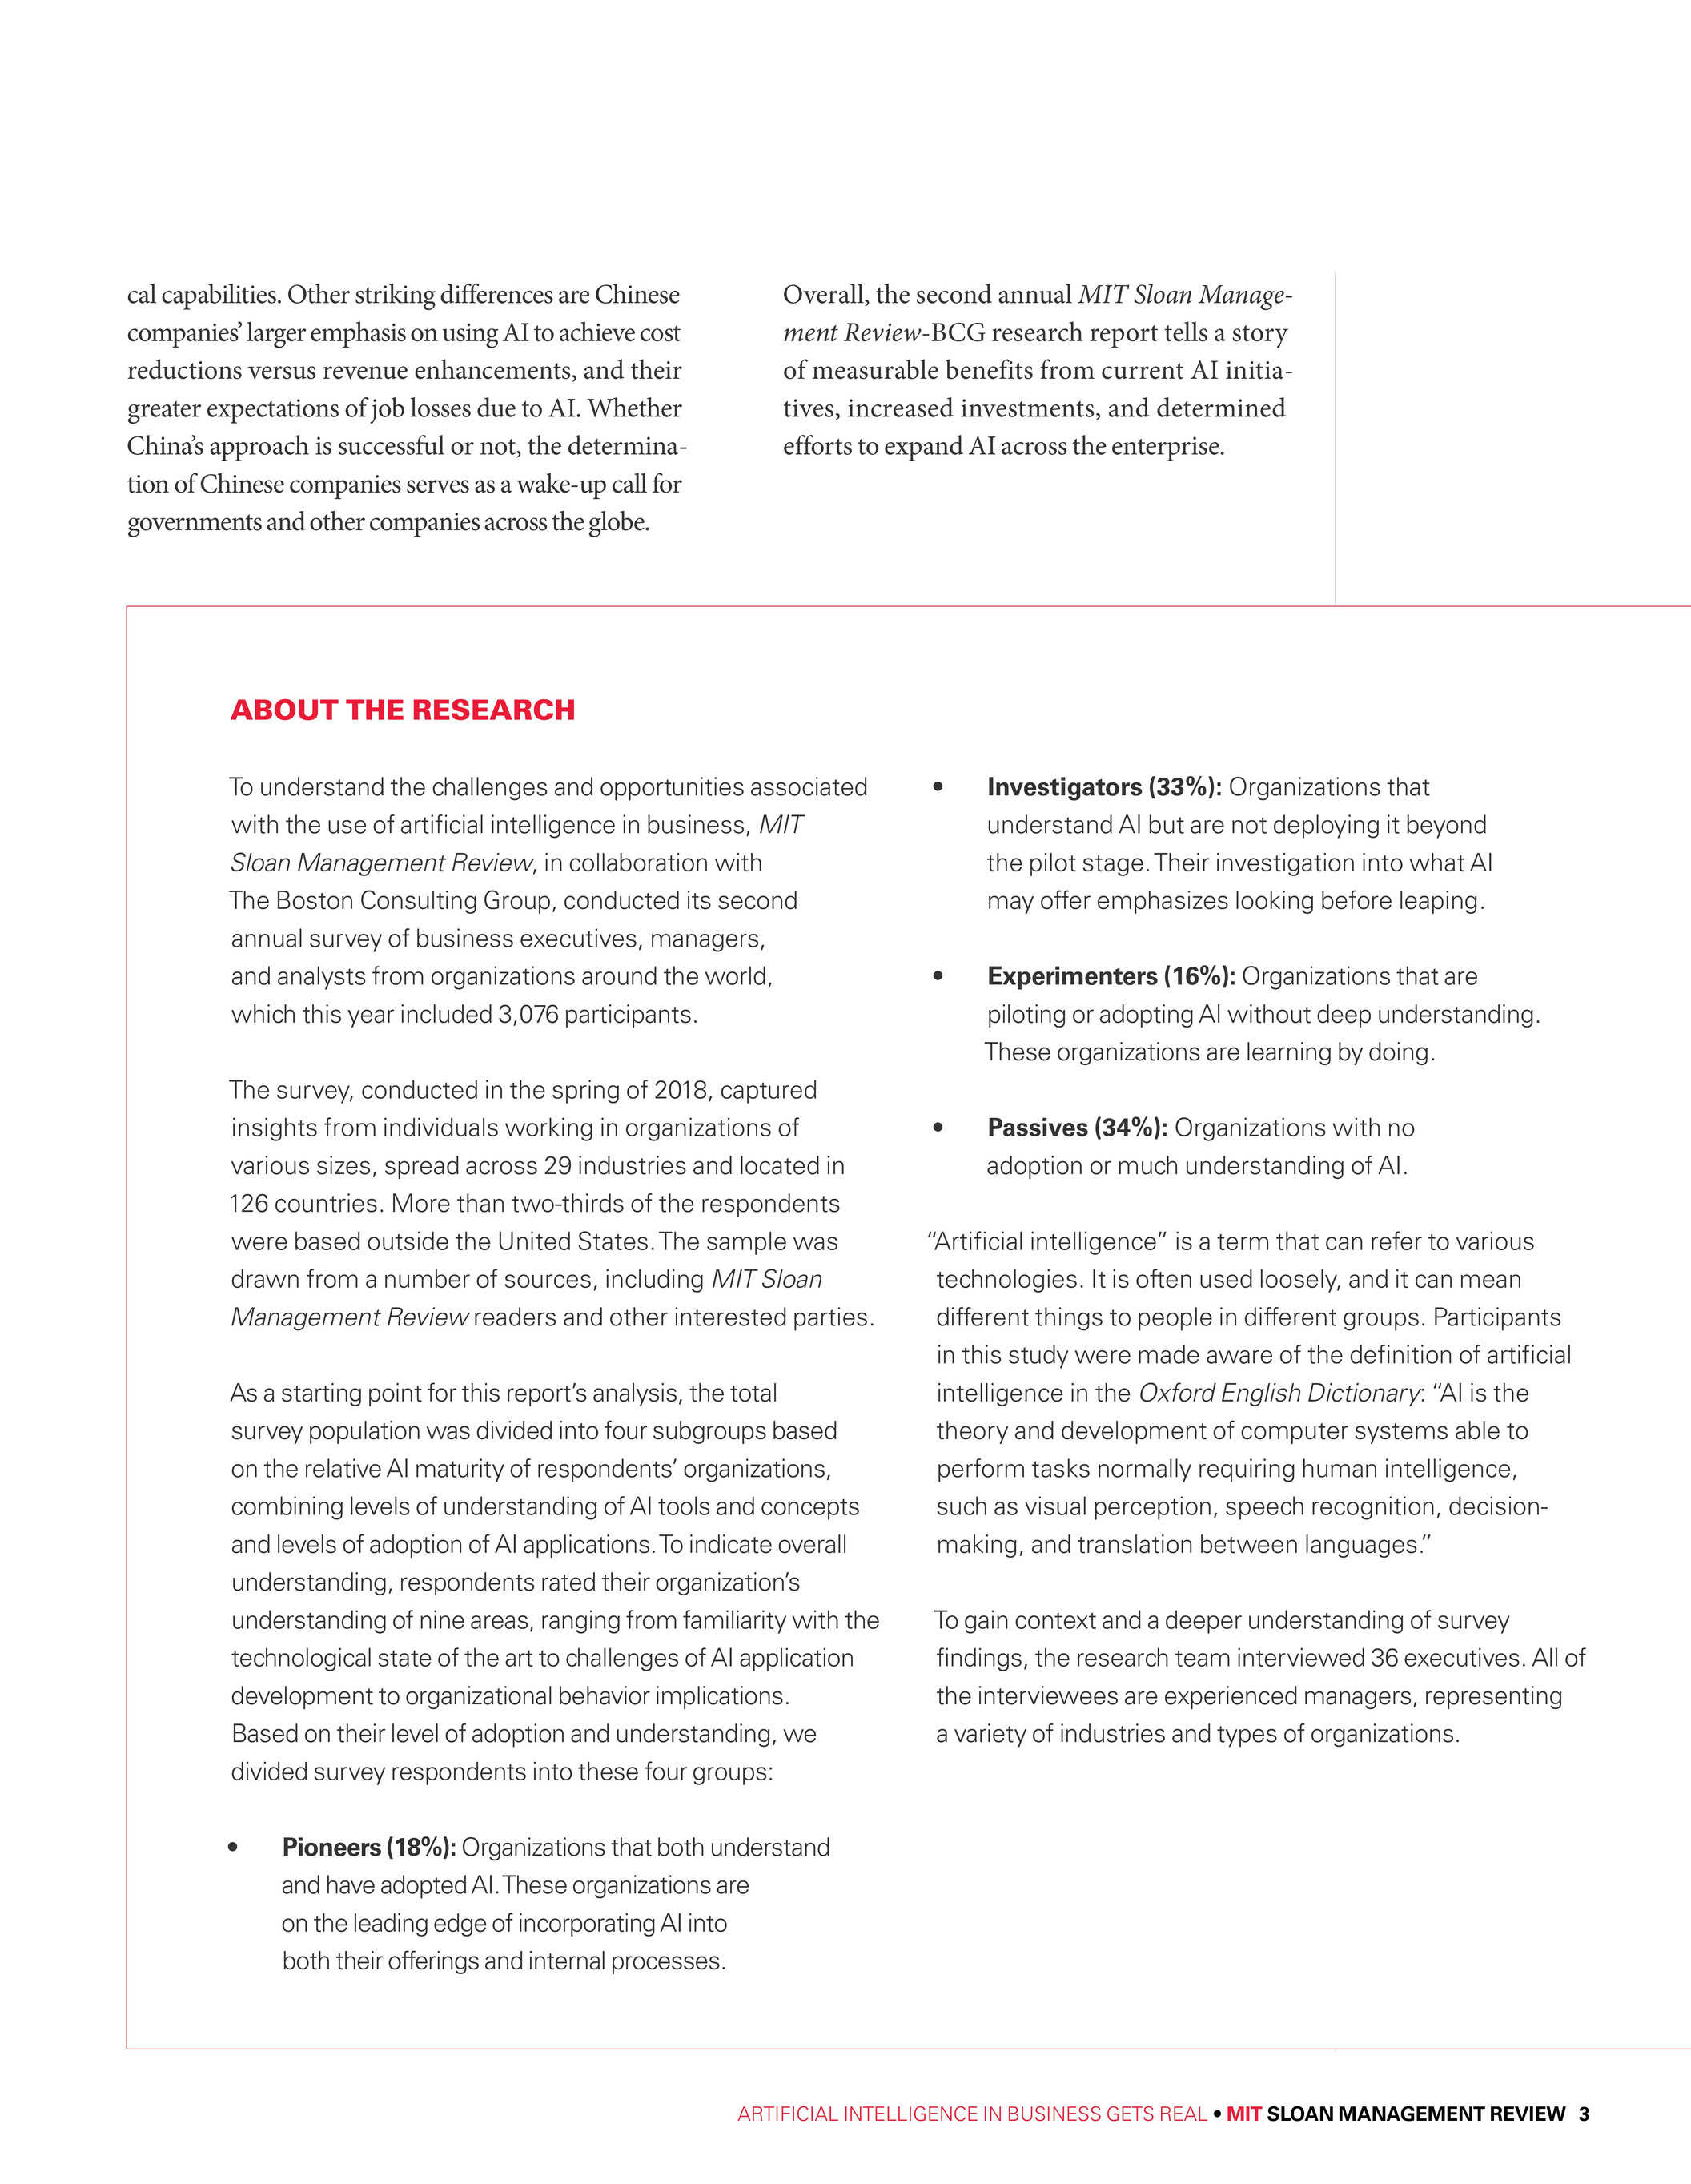 SHARE WOOD STUDIOS - Study By MIT Sloan Management Boston Consulting  Group_60280-MITSMR-BCG-Report2018 - Page 1 - Created with Publitas.com